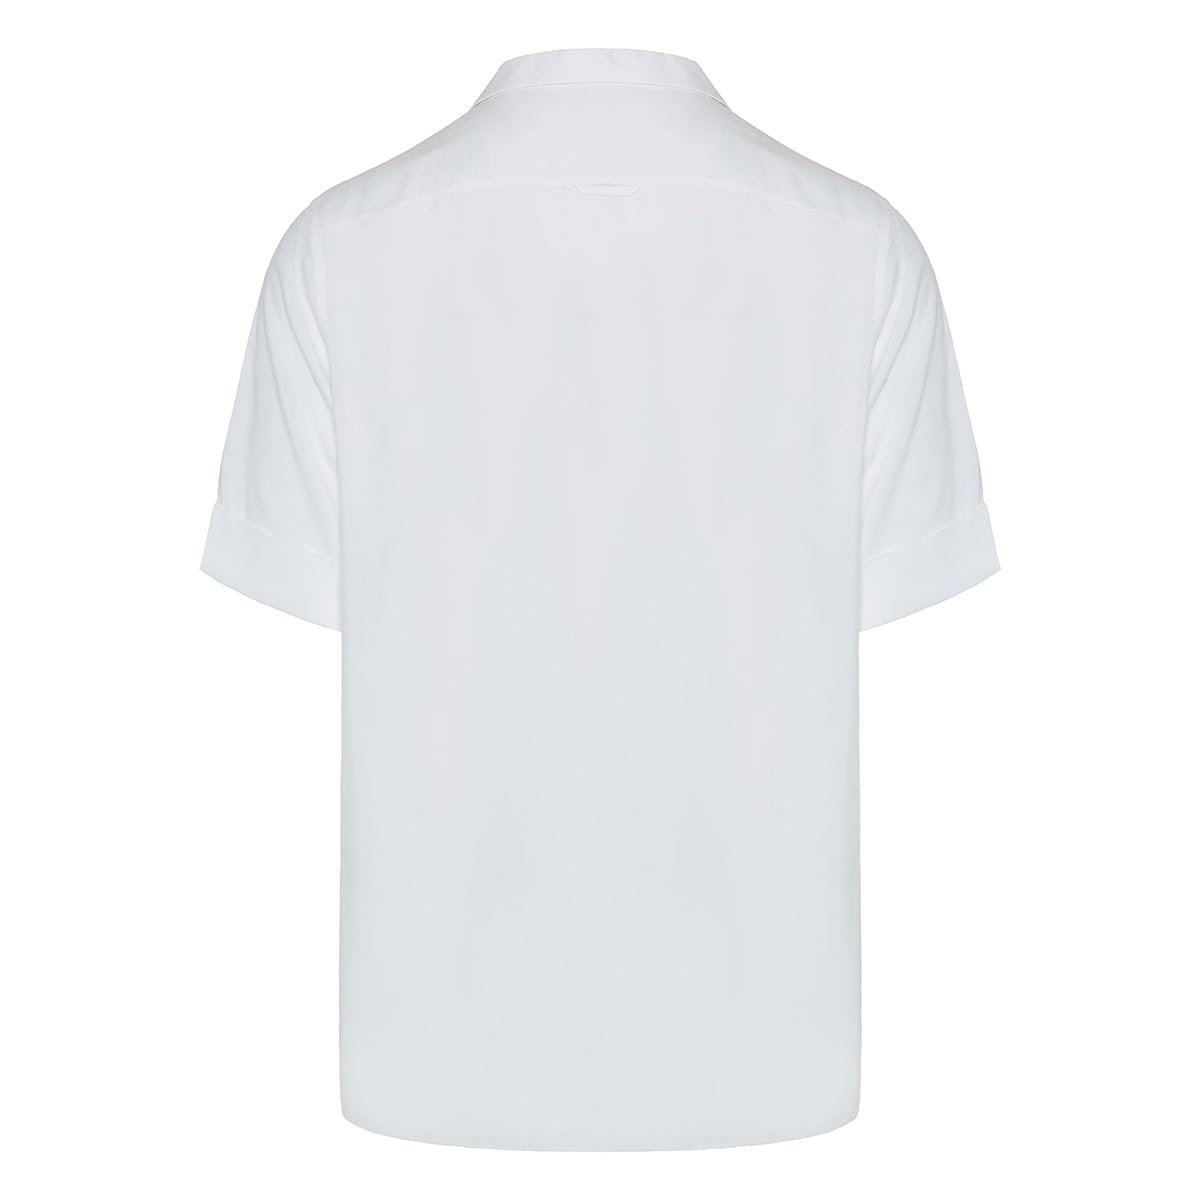 VLTN short-sleeved shirt